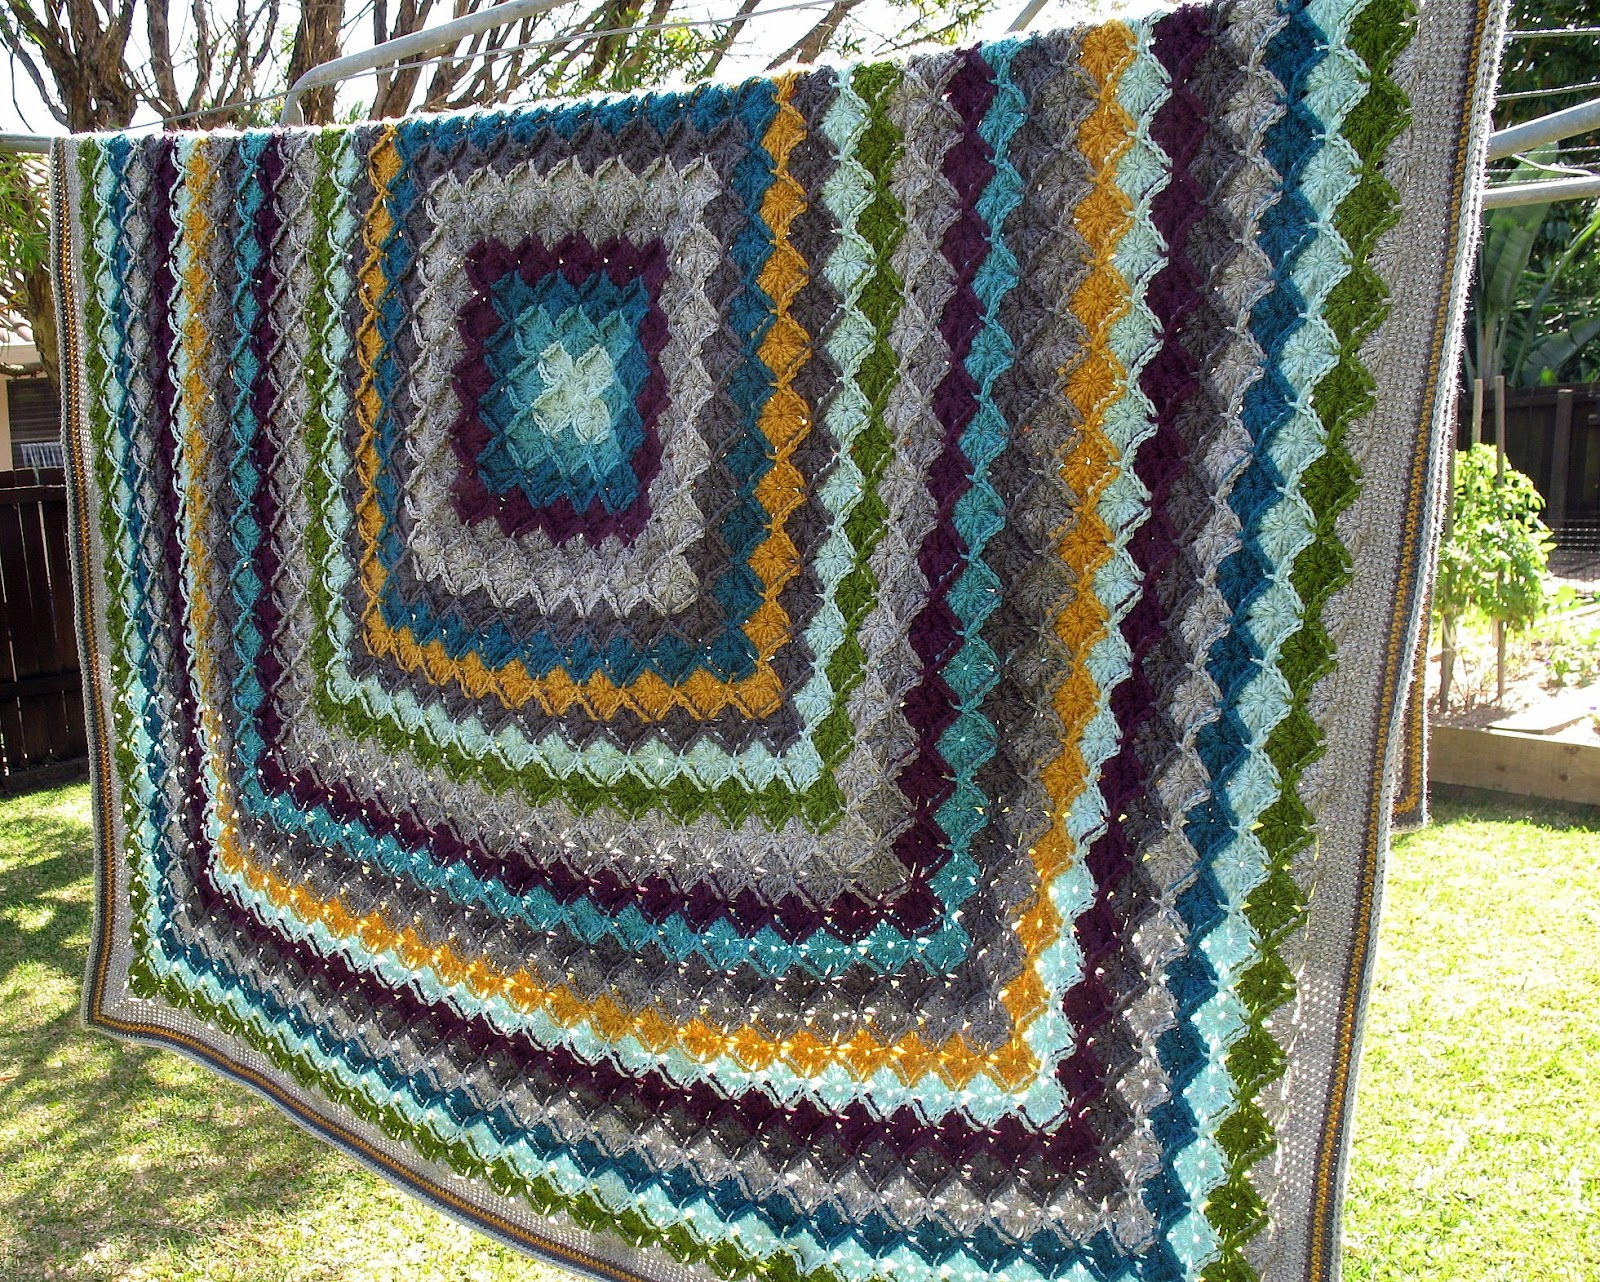 eclectic me: wool eater blanket CAL - finished!